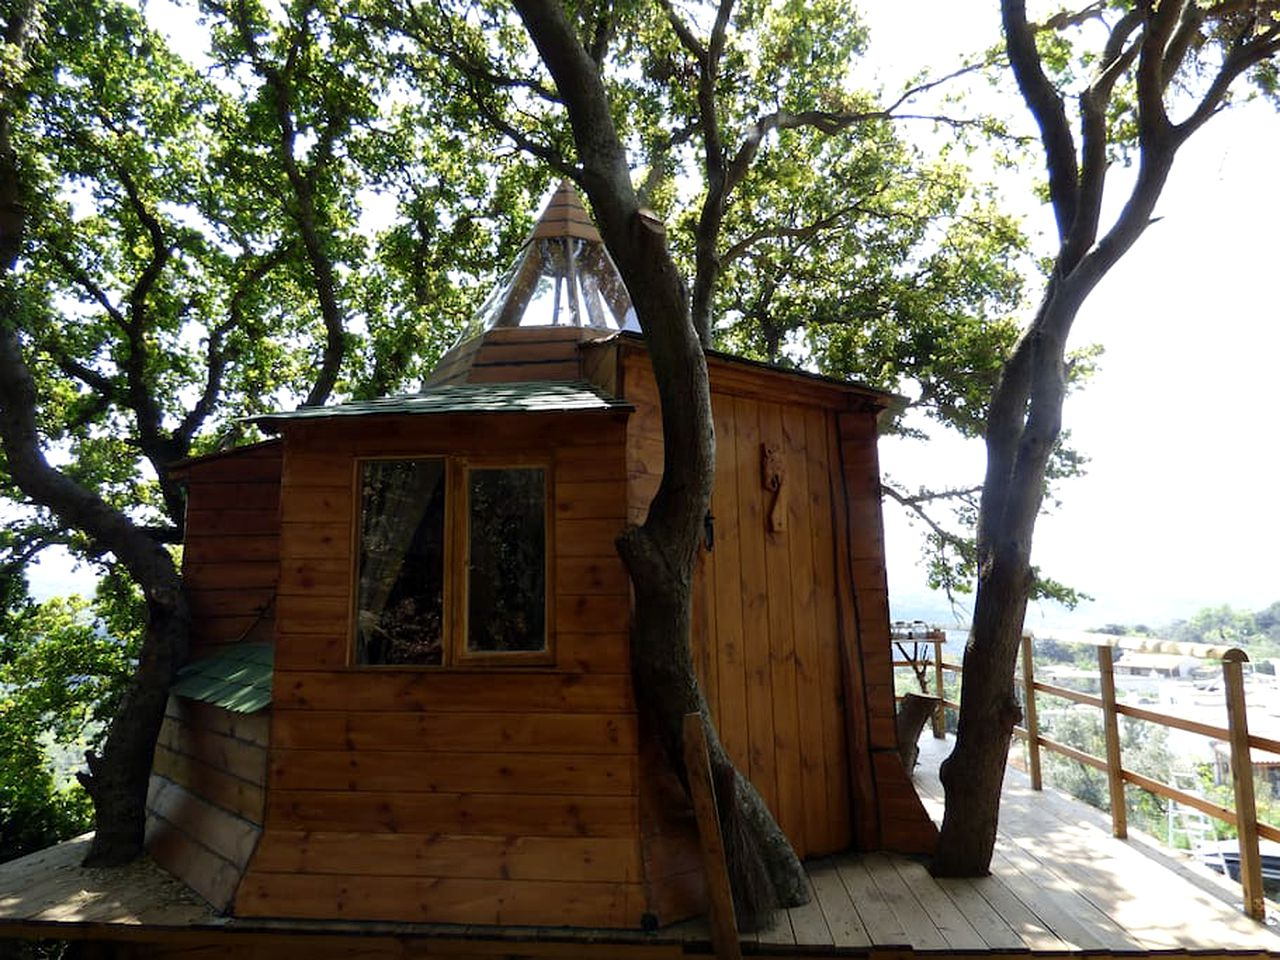 Tree Houses (Monopari, Crete, Greece)